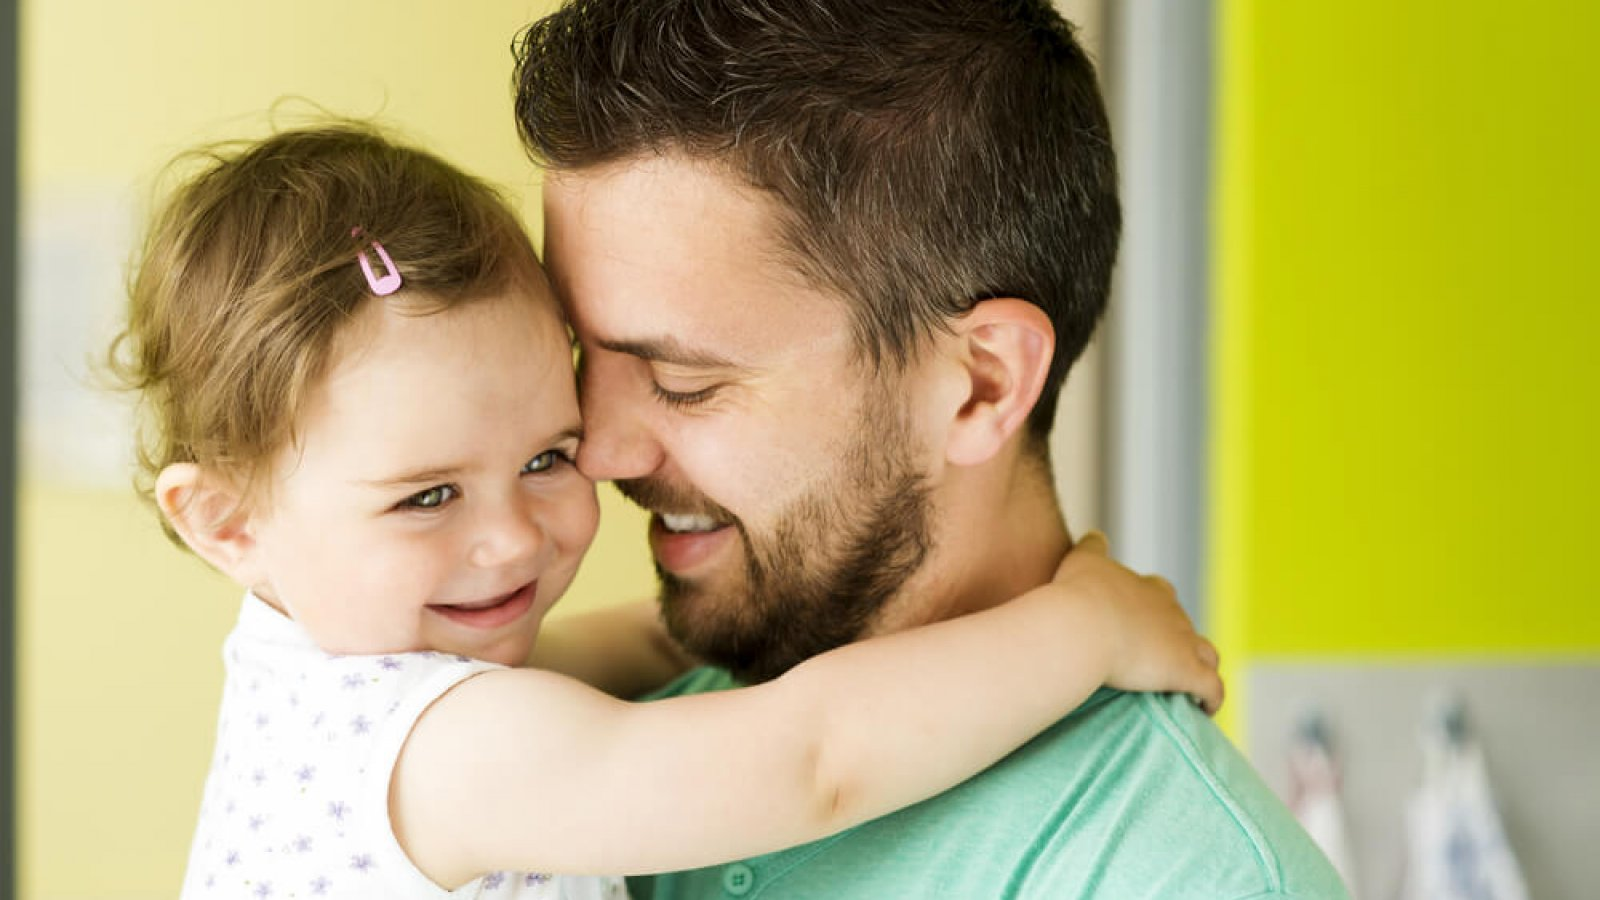 How to Get Full Custody as a Father? The Answer May Surprise You